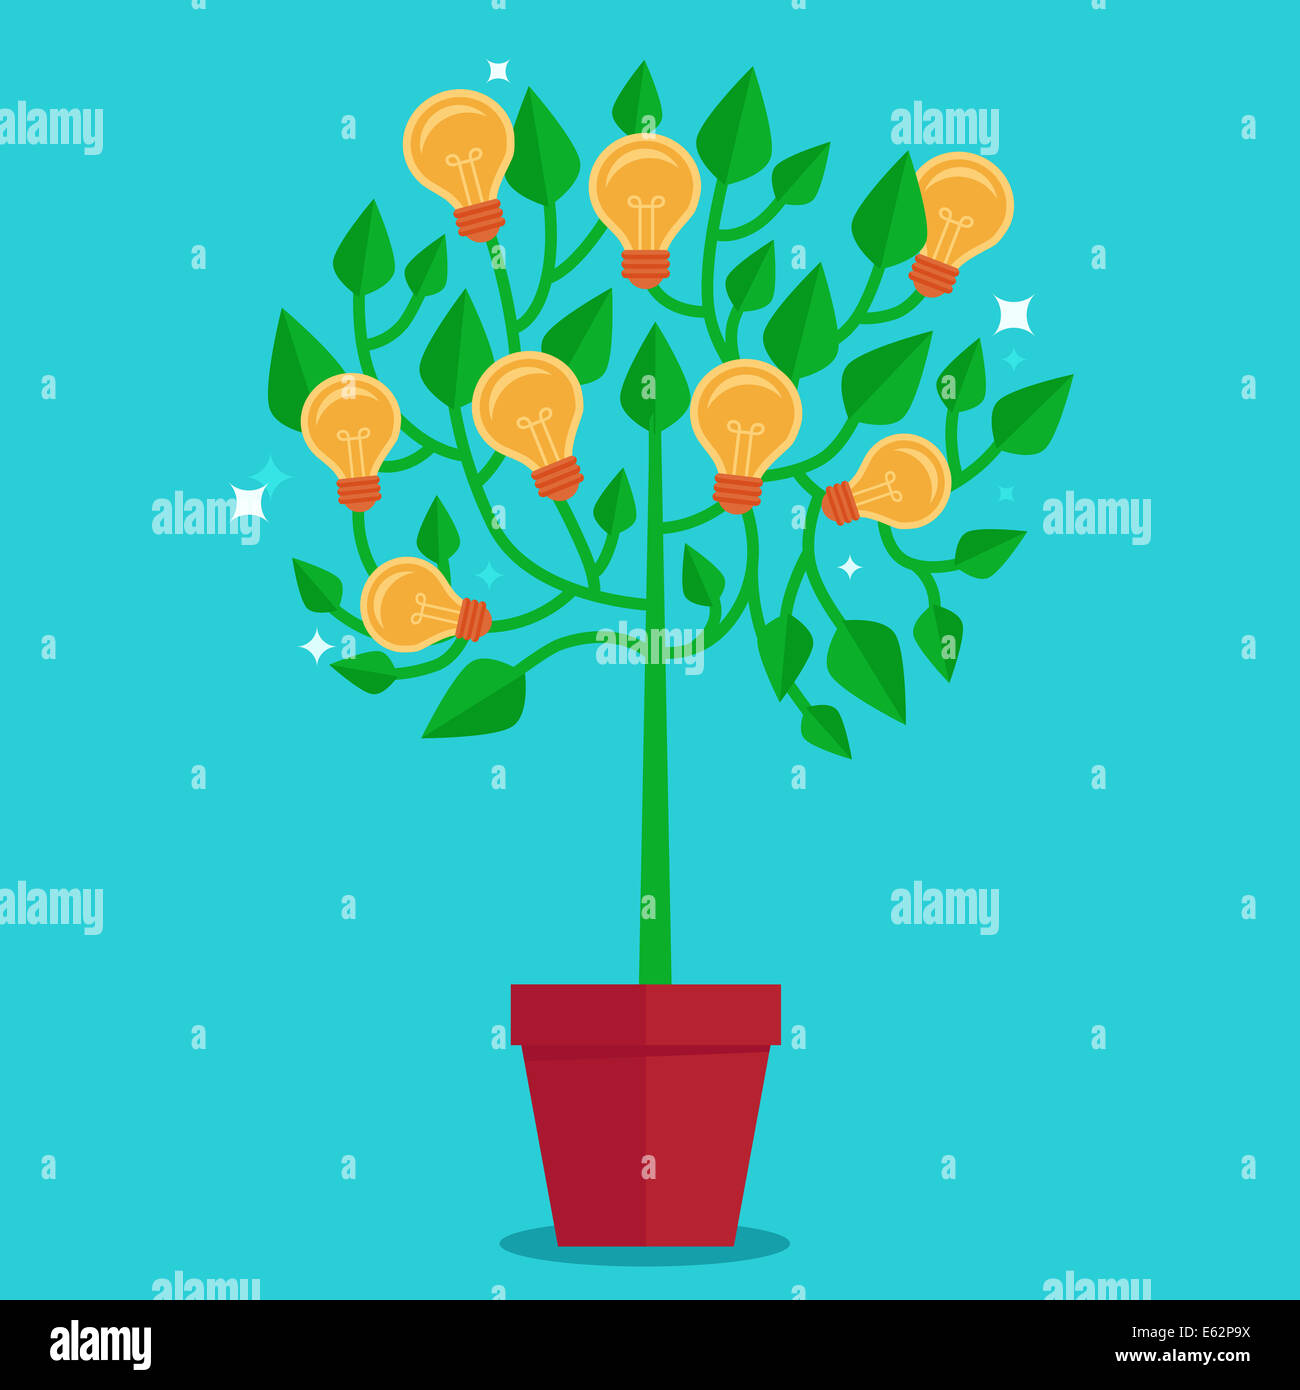 Tree concept in flat style - green plant with light bulbs on the branches - idea concept - Stock Image